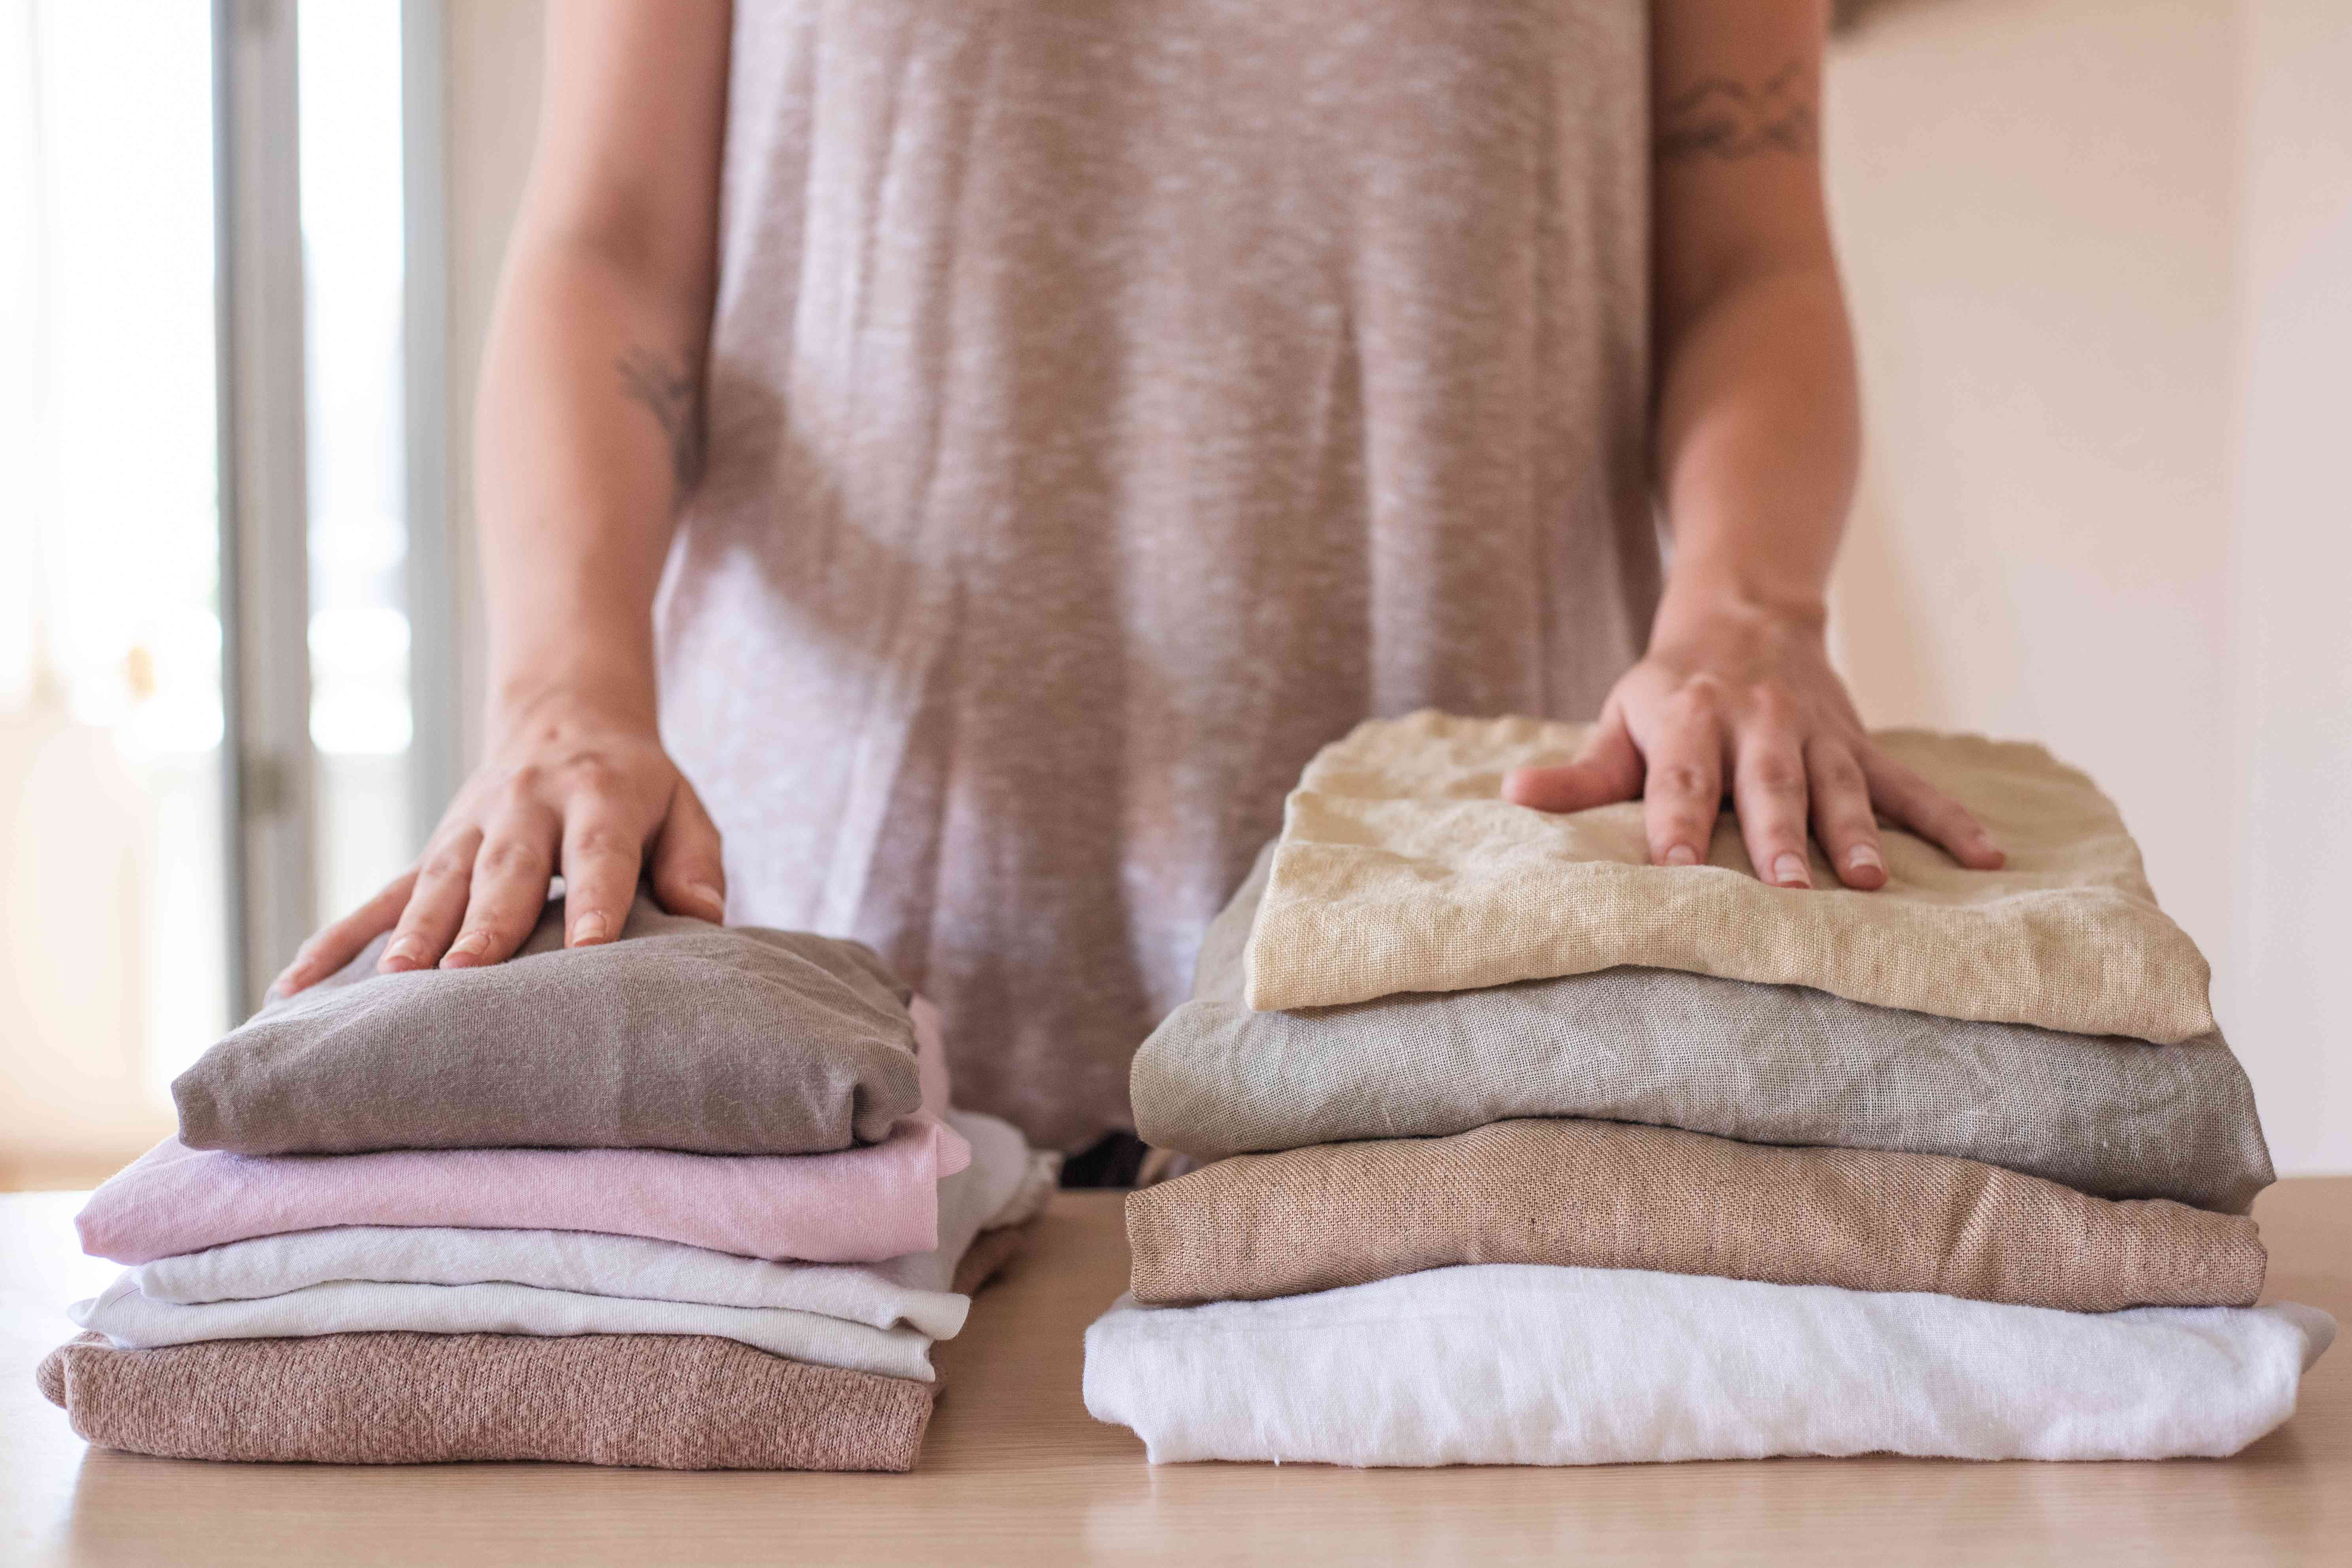 person stands in front of two folded piles of clothing: one cotton, one linen